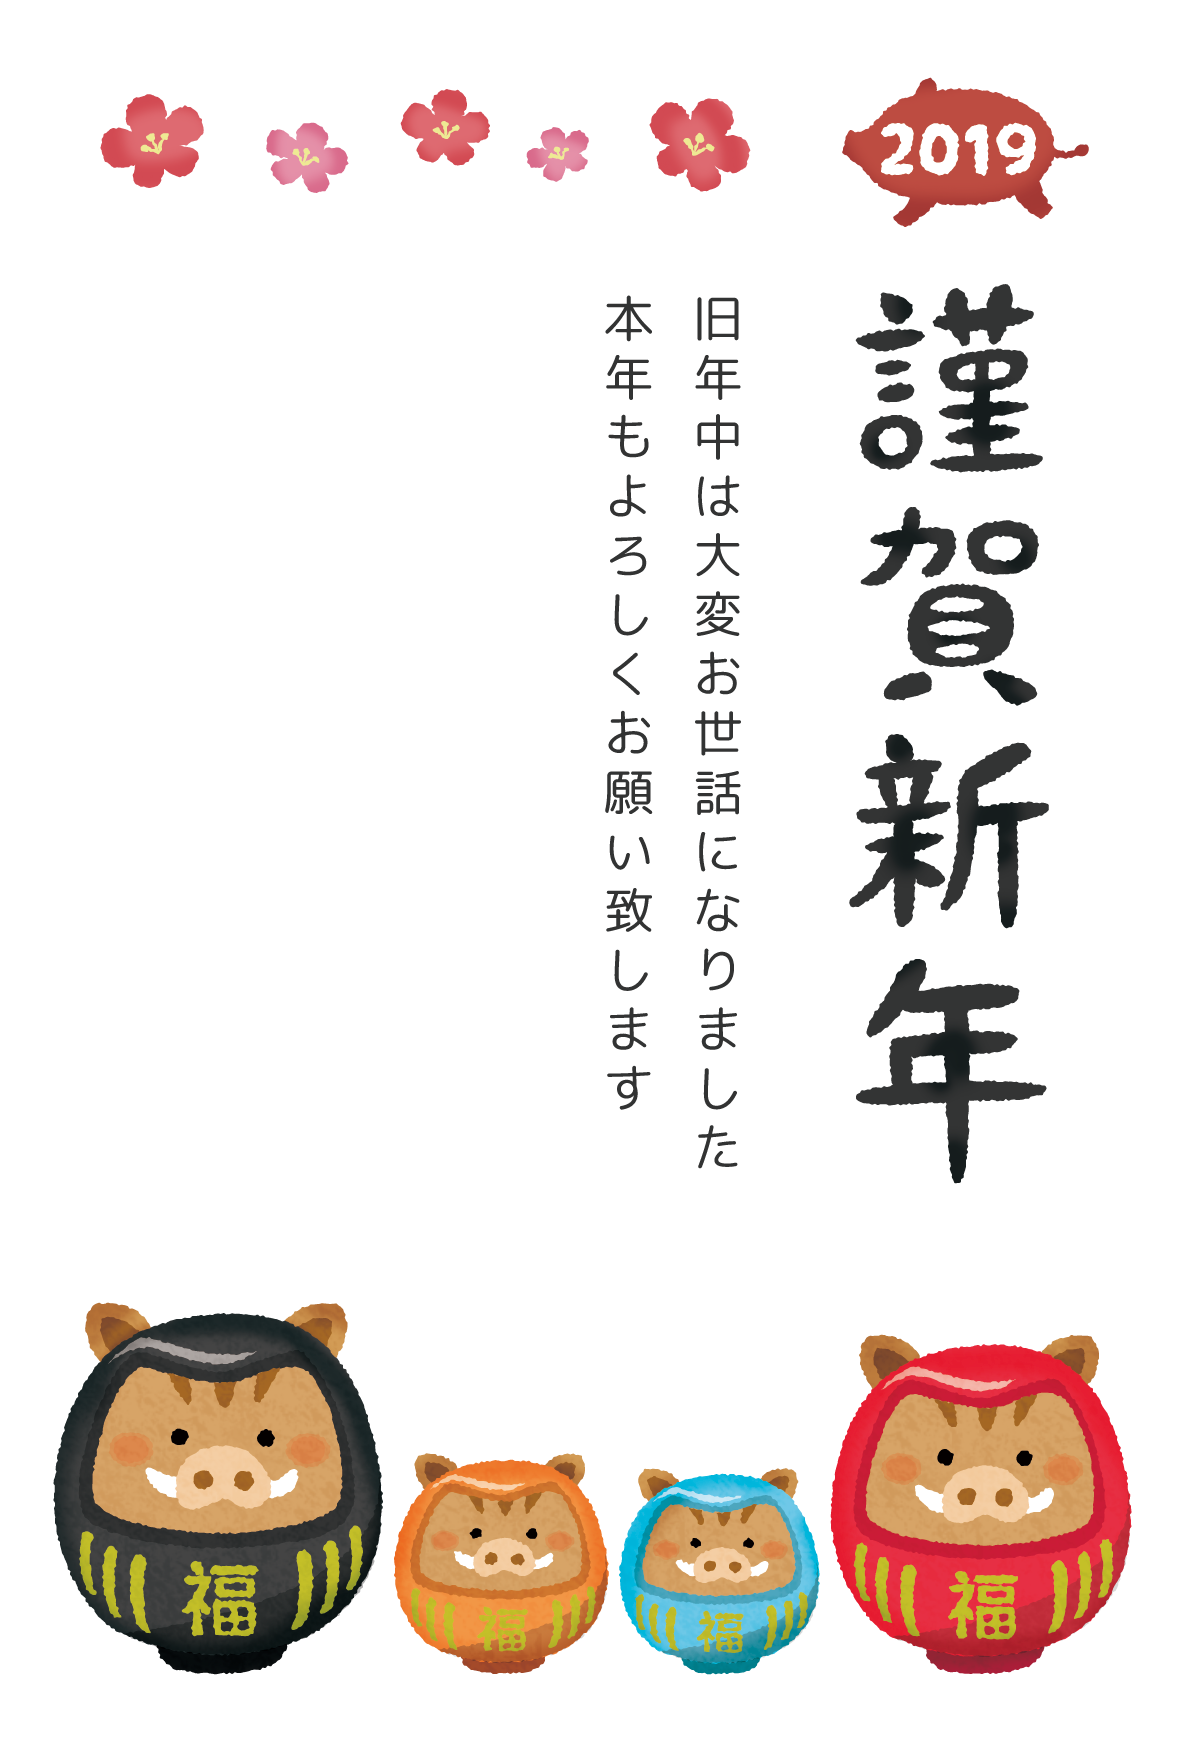 Kingashinnen Card Free Template (Boar daruma couple and children)